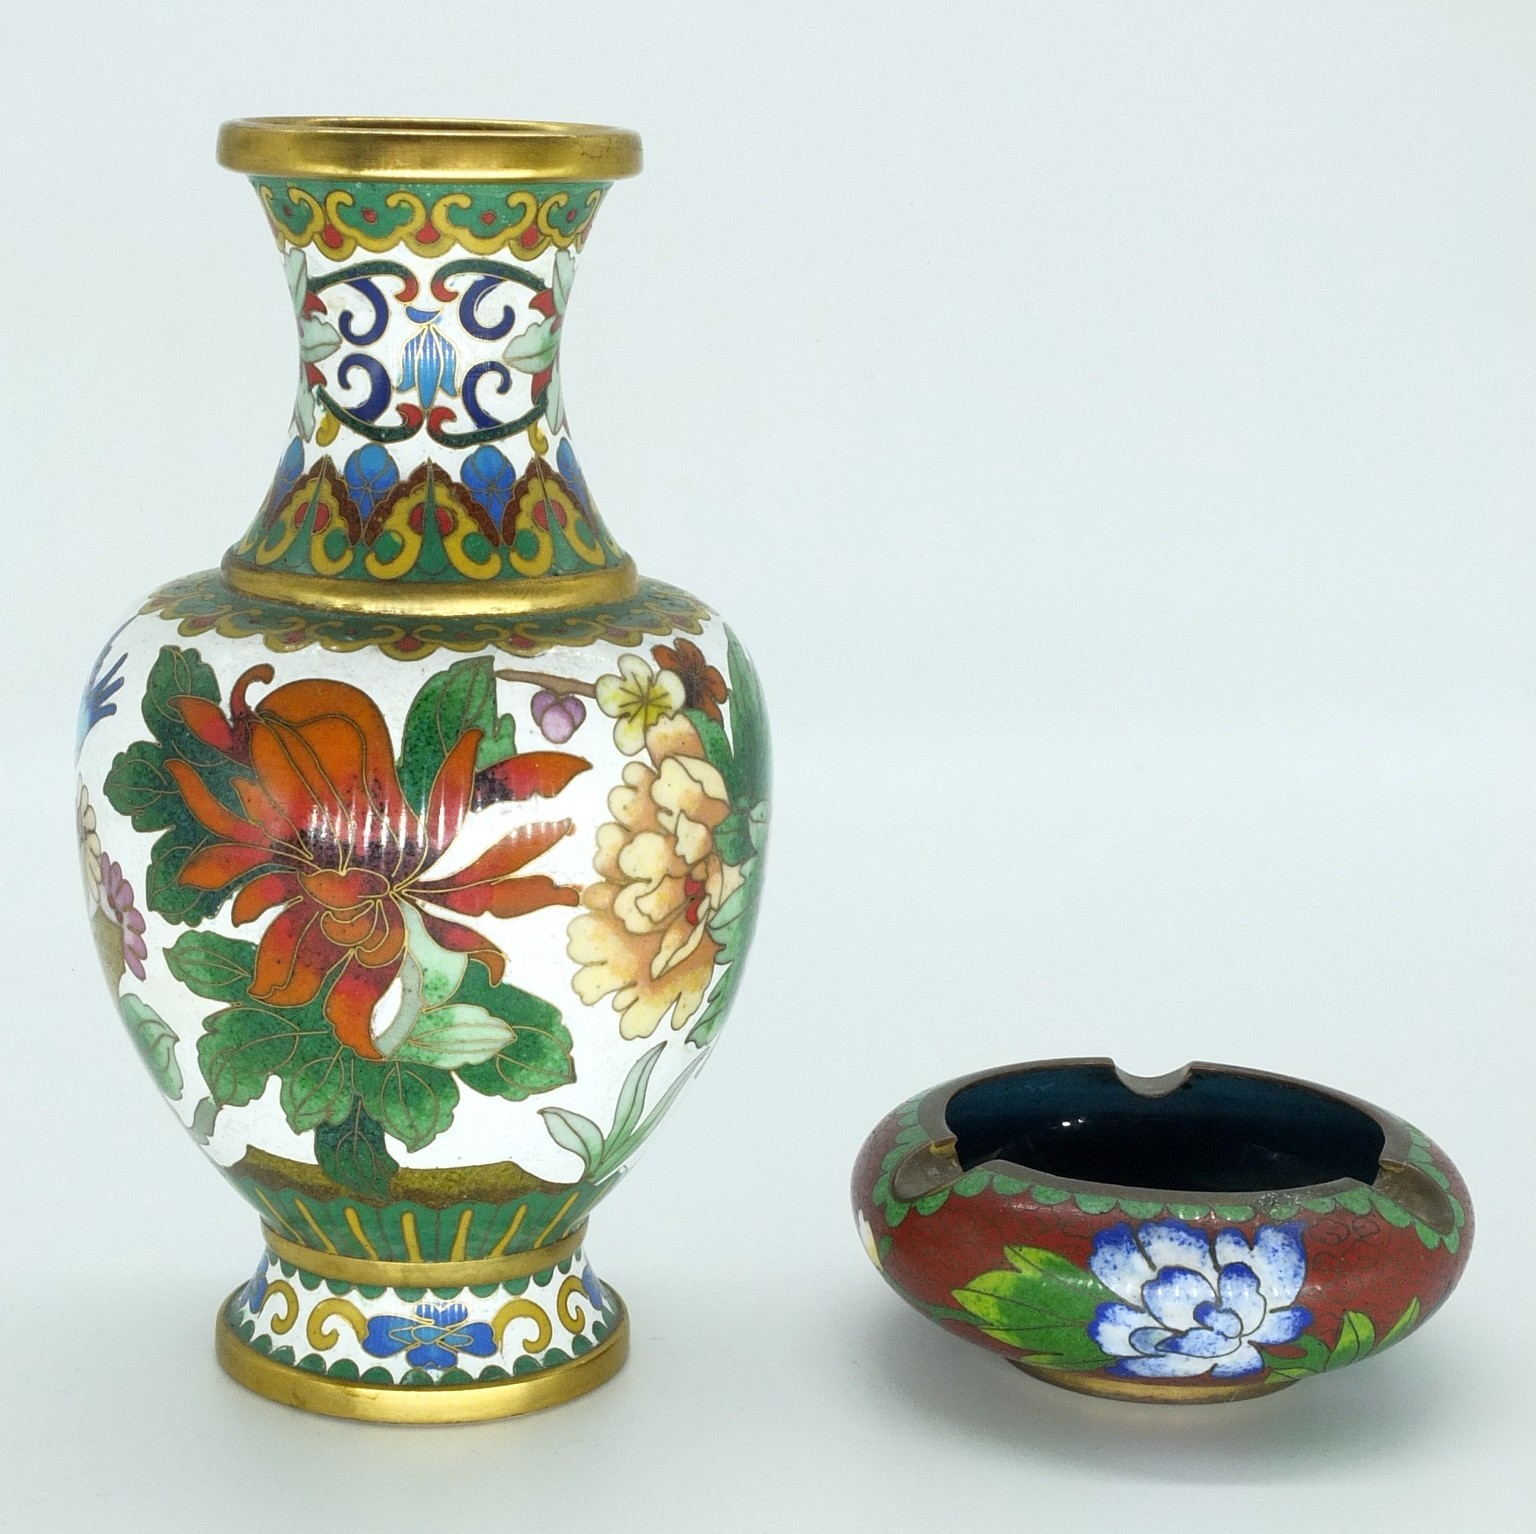 'Chinese Cloisonne Vase and Ashtray'